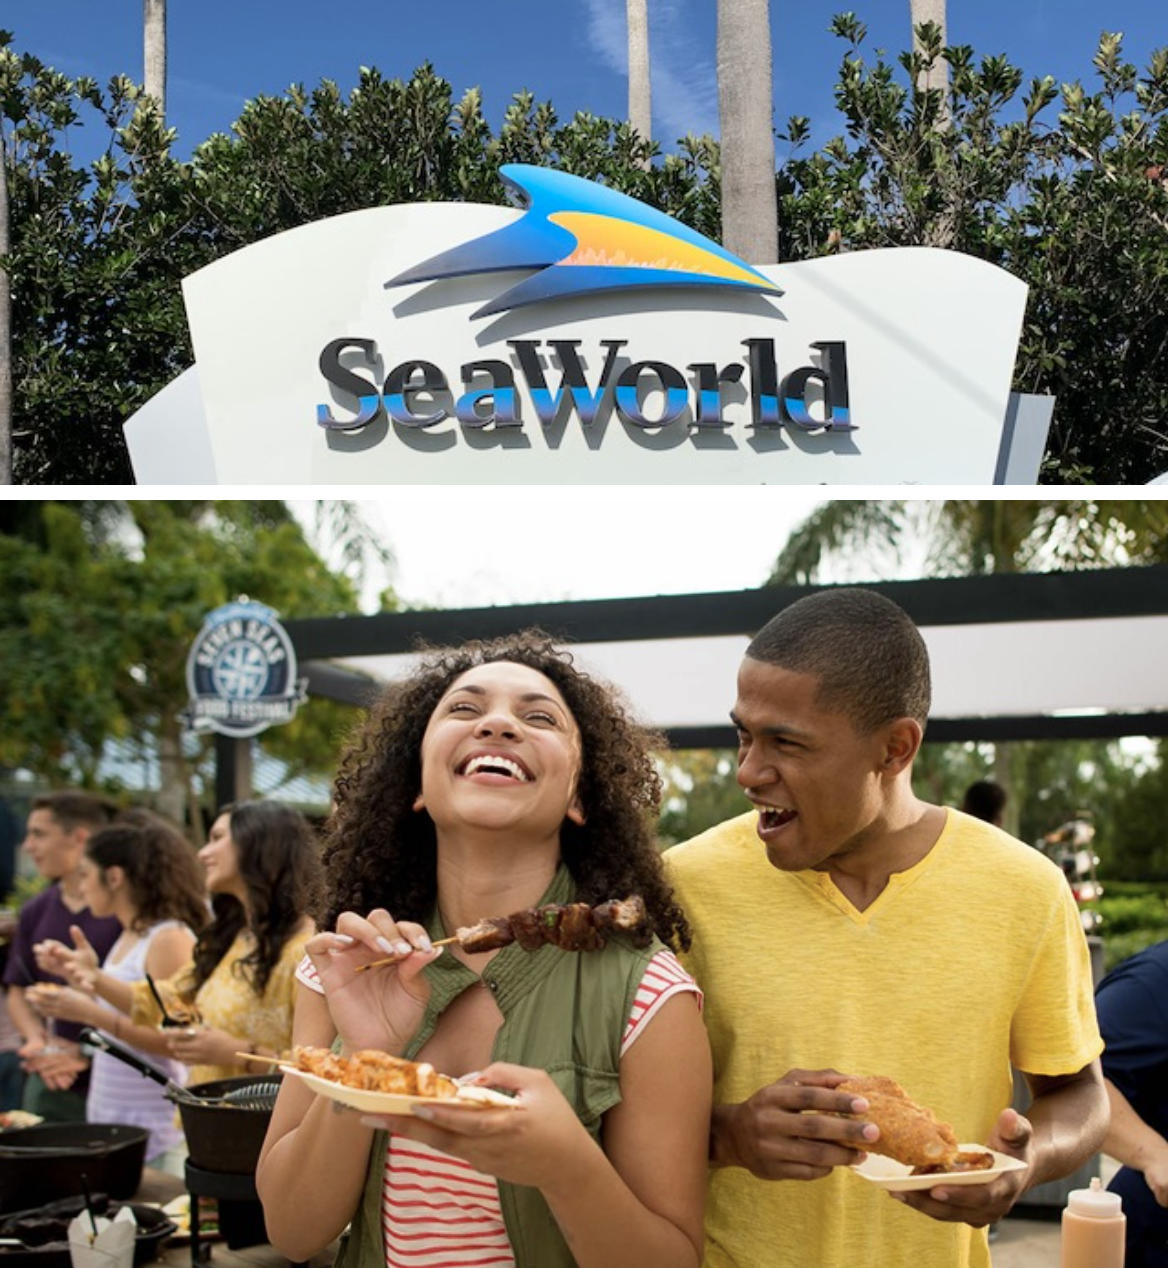 Sandiegoville Seaworld San Diego To Reopen This Week With Limited Capacity Zoo Days Bbq Beer Events